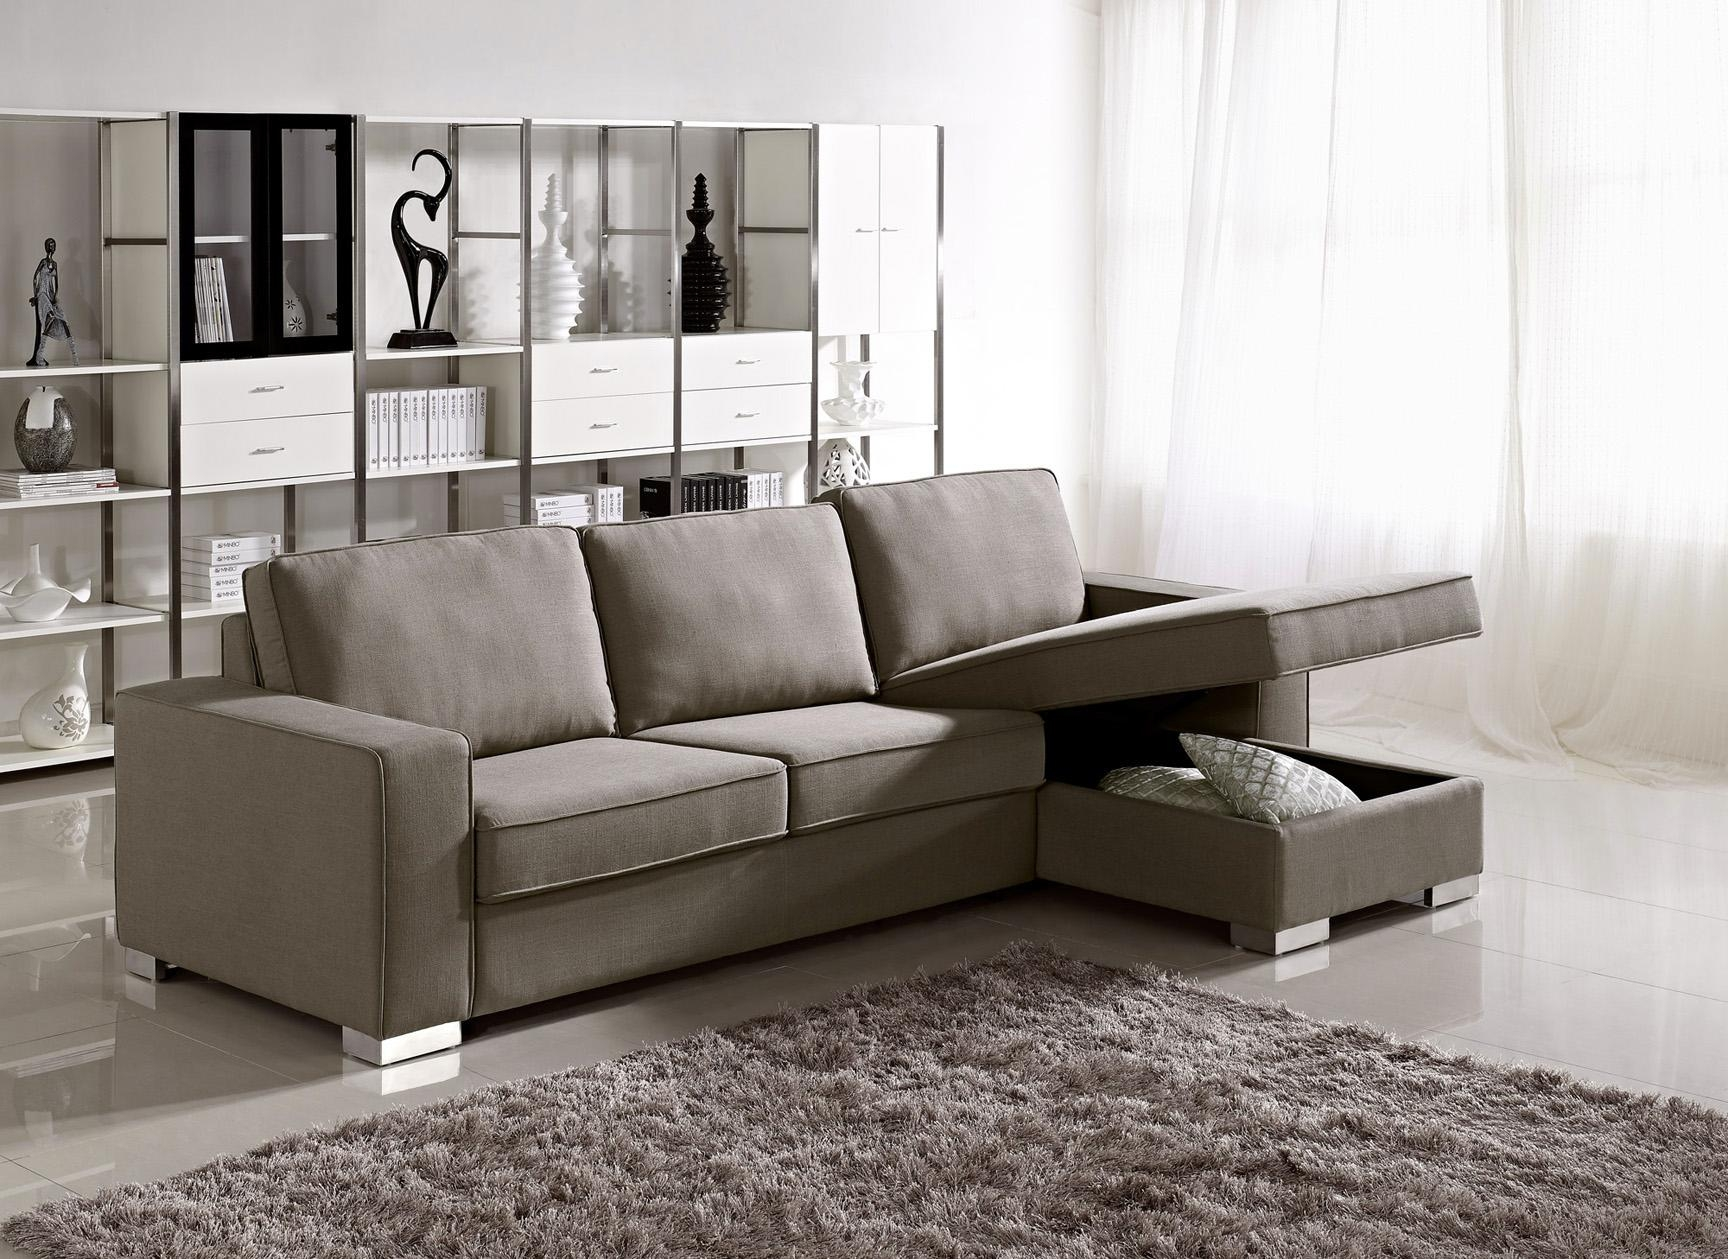 Sofa Chaise Lounge (Image 14 of 20)